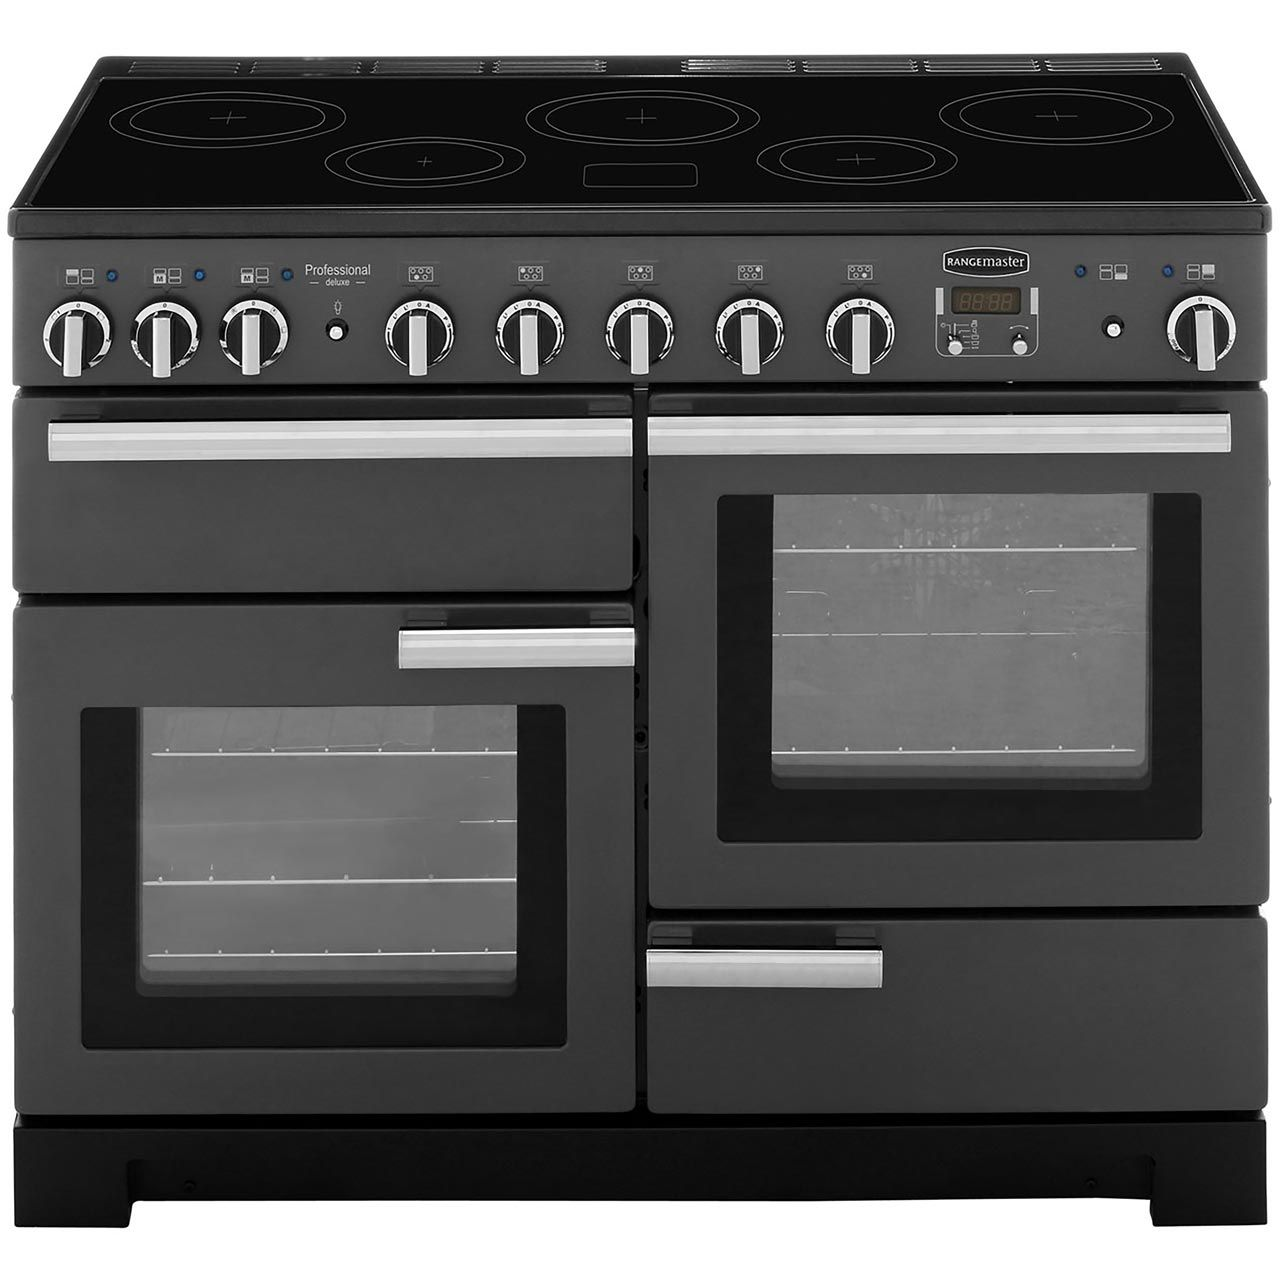 Rangemaster Professional Deluxe Pdl110eigb C 110cm Electric Range Cooker With Induction Hob Black A A Rated